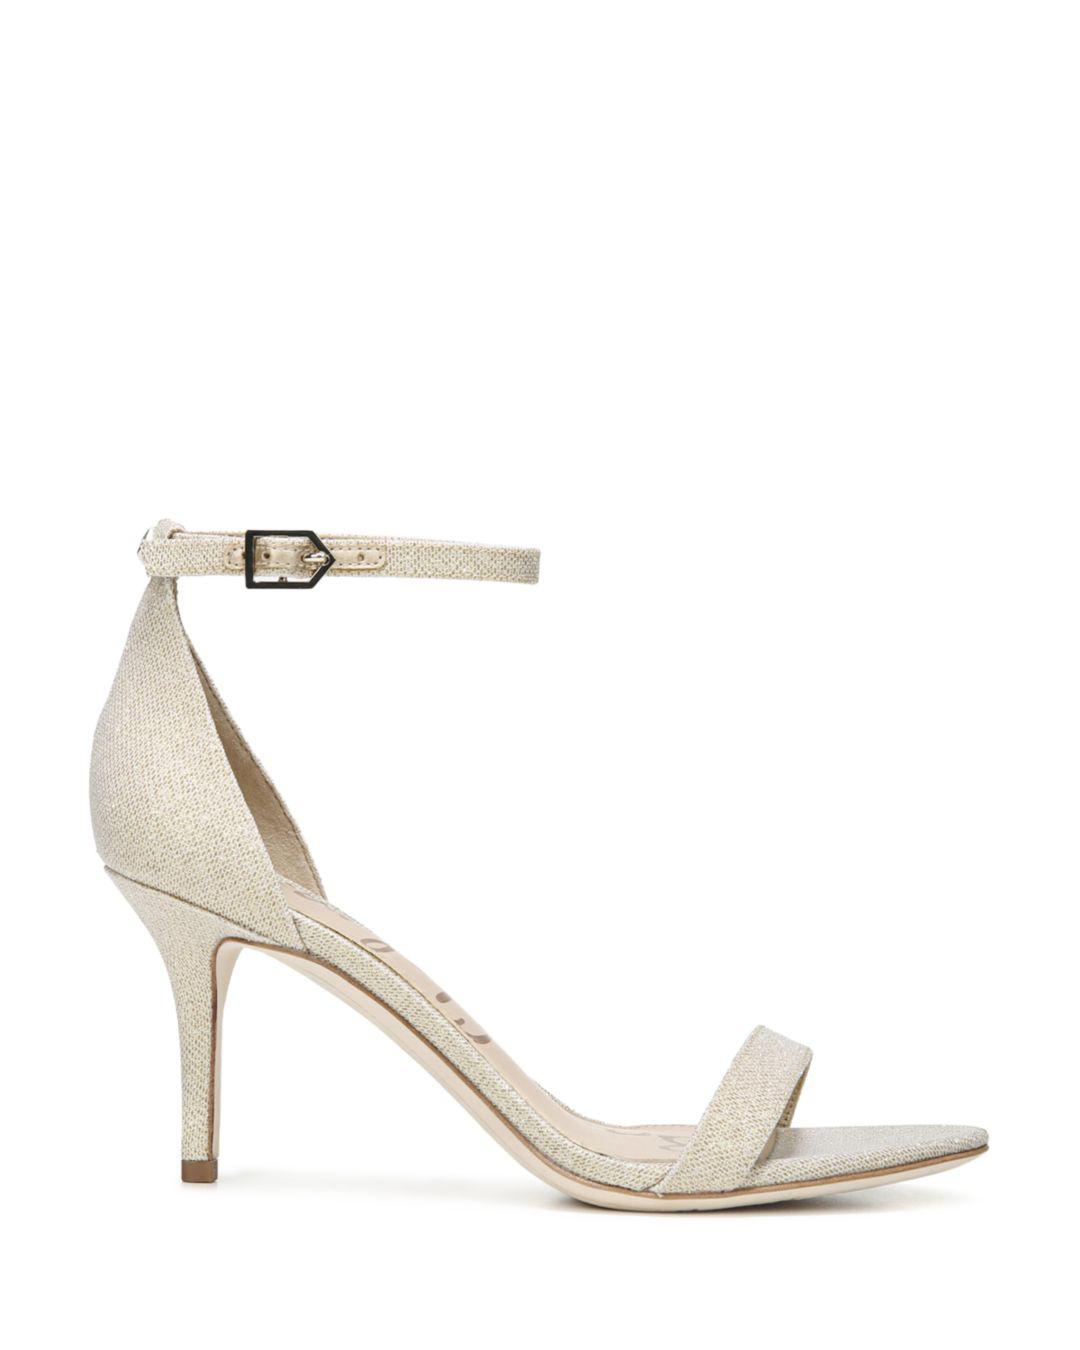 c1c4bf5789a140 Lyst - Sam Edelman Patti Ankle Strap Sandals in Natural - Save 31.0%